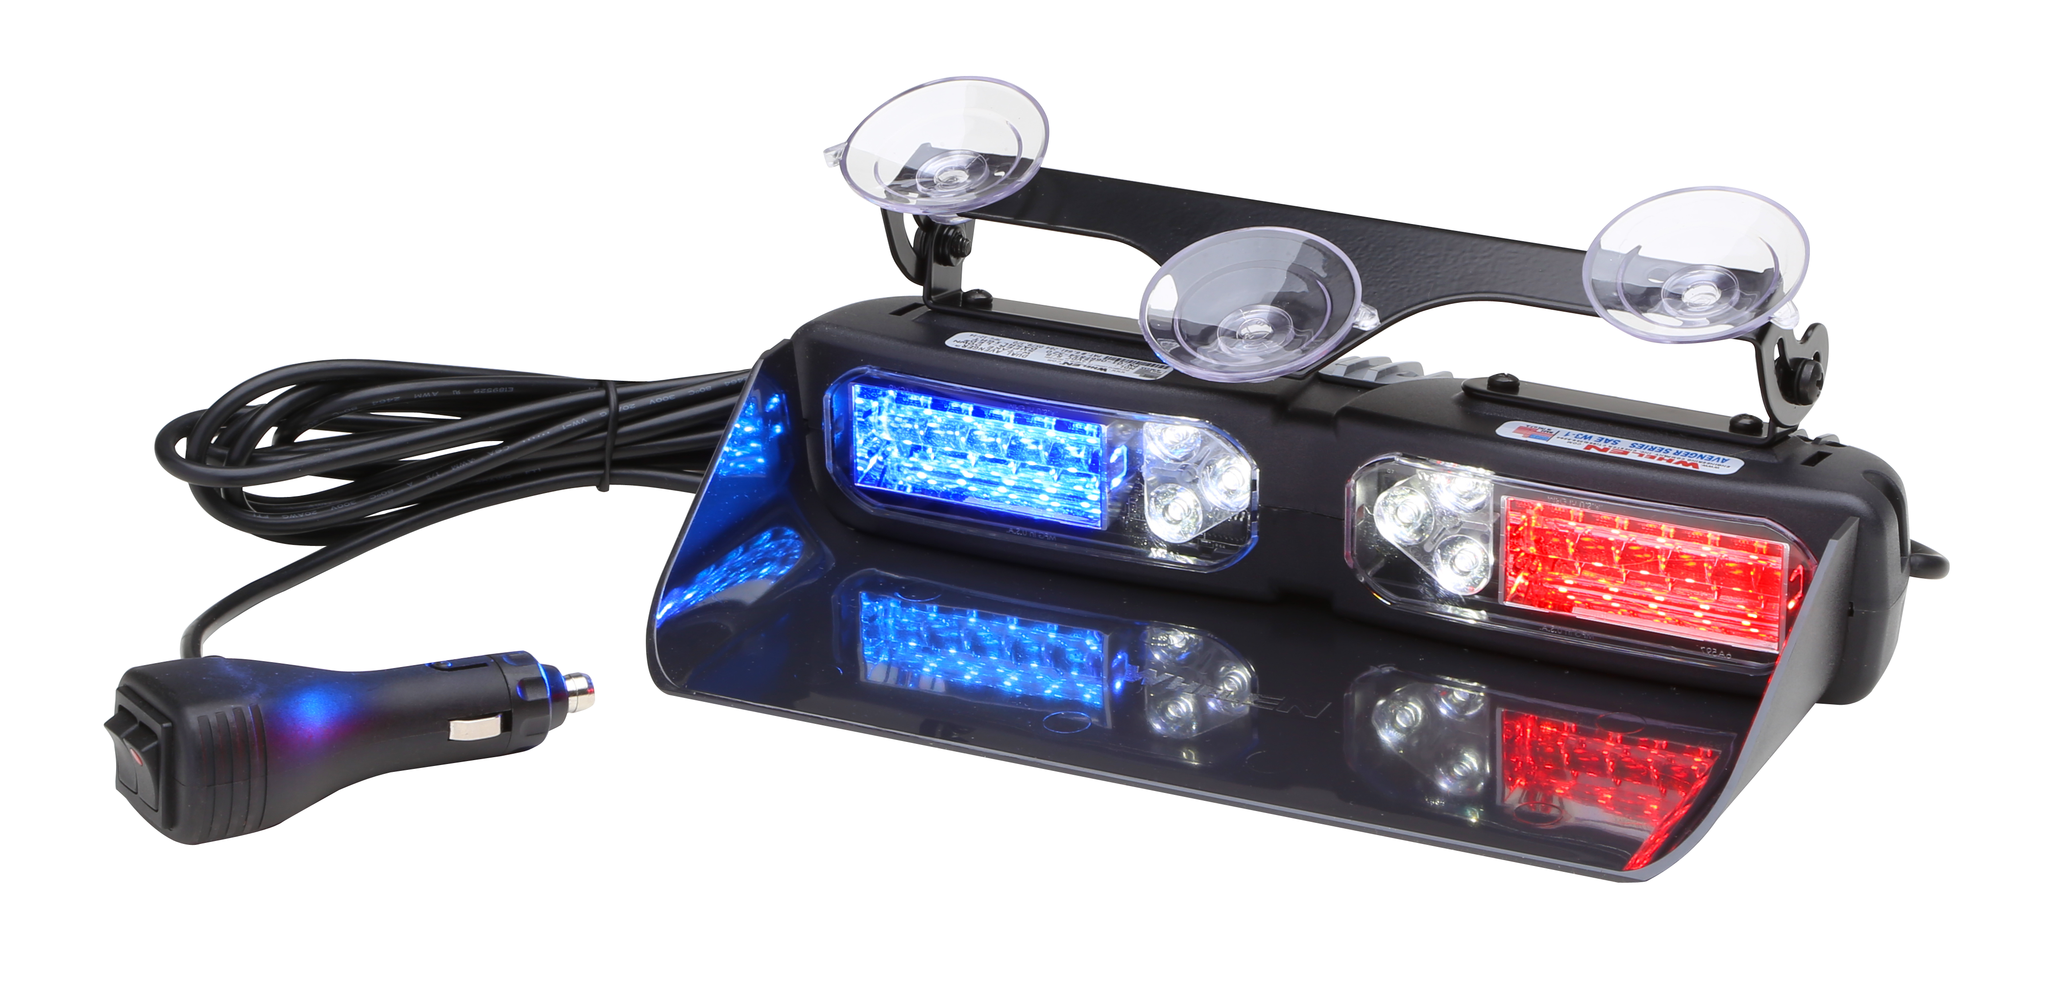 Whelen Dual Avenger Linear Super Led Dash Deck Mounted Light With Also Found A Circuit That Strobes The Leds Like Police Lights Two Lr11 Take Downs